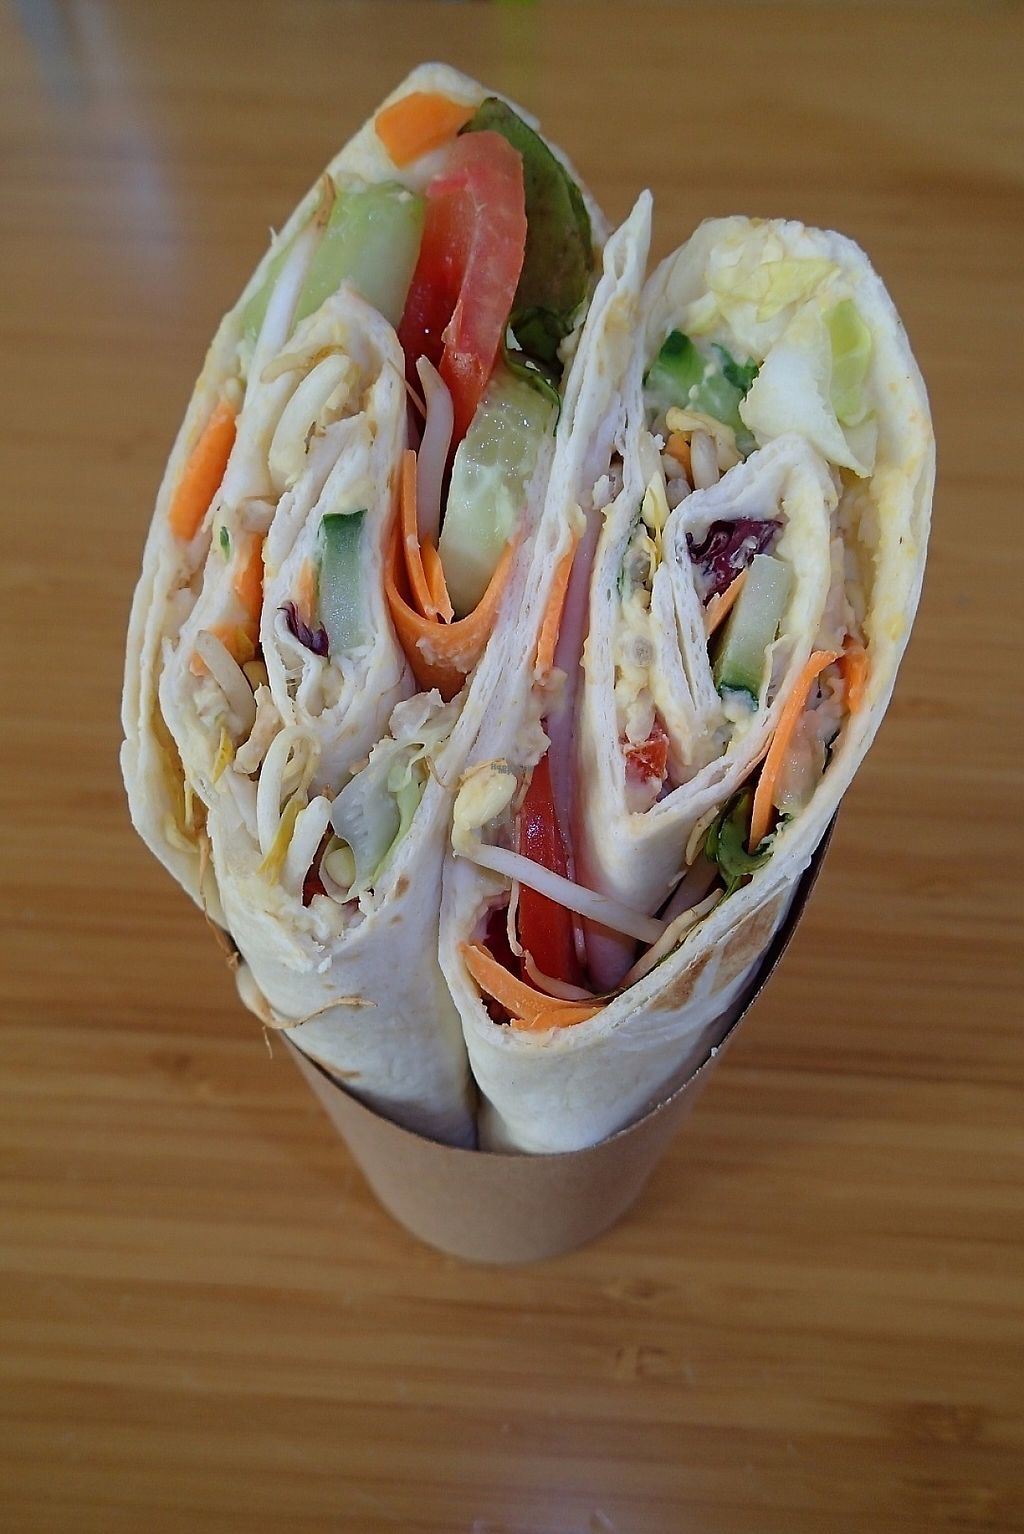 """Photo of Australian Coffee Shop  by <a href=""""/members/profile/Tyrone"""">Tyrone</a> <br/>Vegan Wrap (Yum!) <br/> April 21, 2017  - <a href='/contact/abuse/image/90191/250665'>Report</a>"""